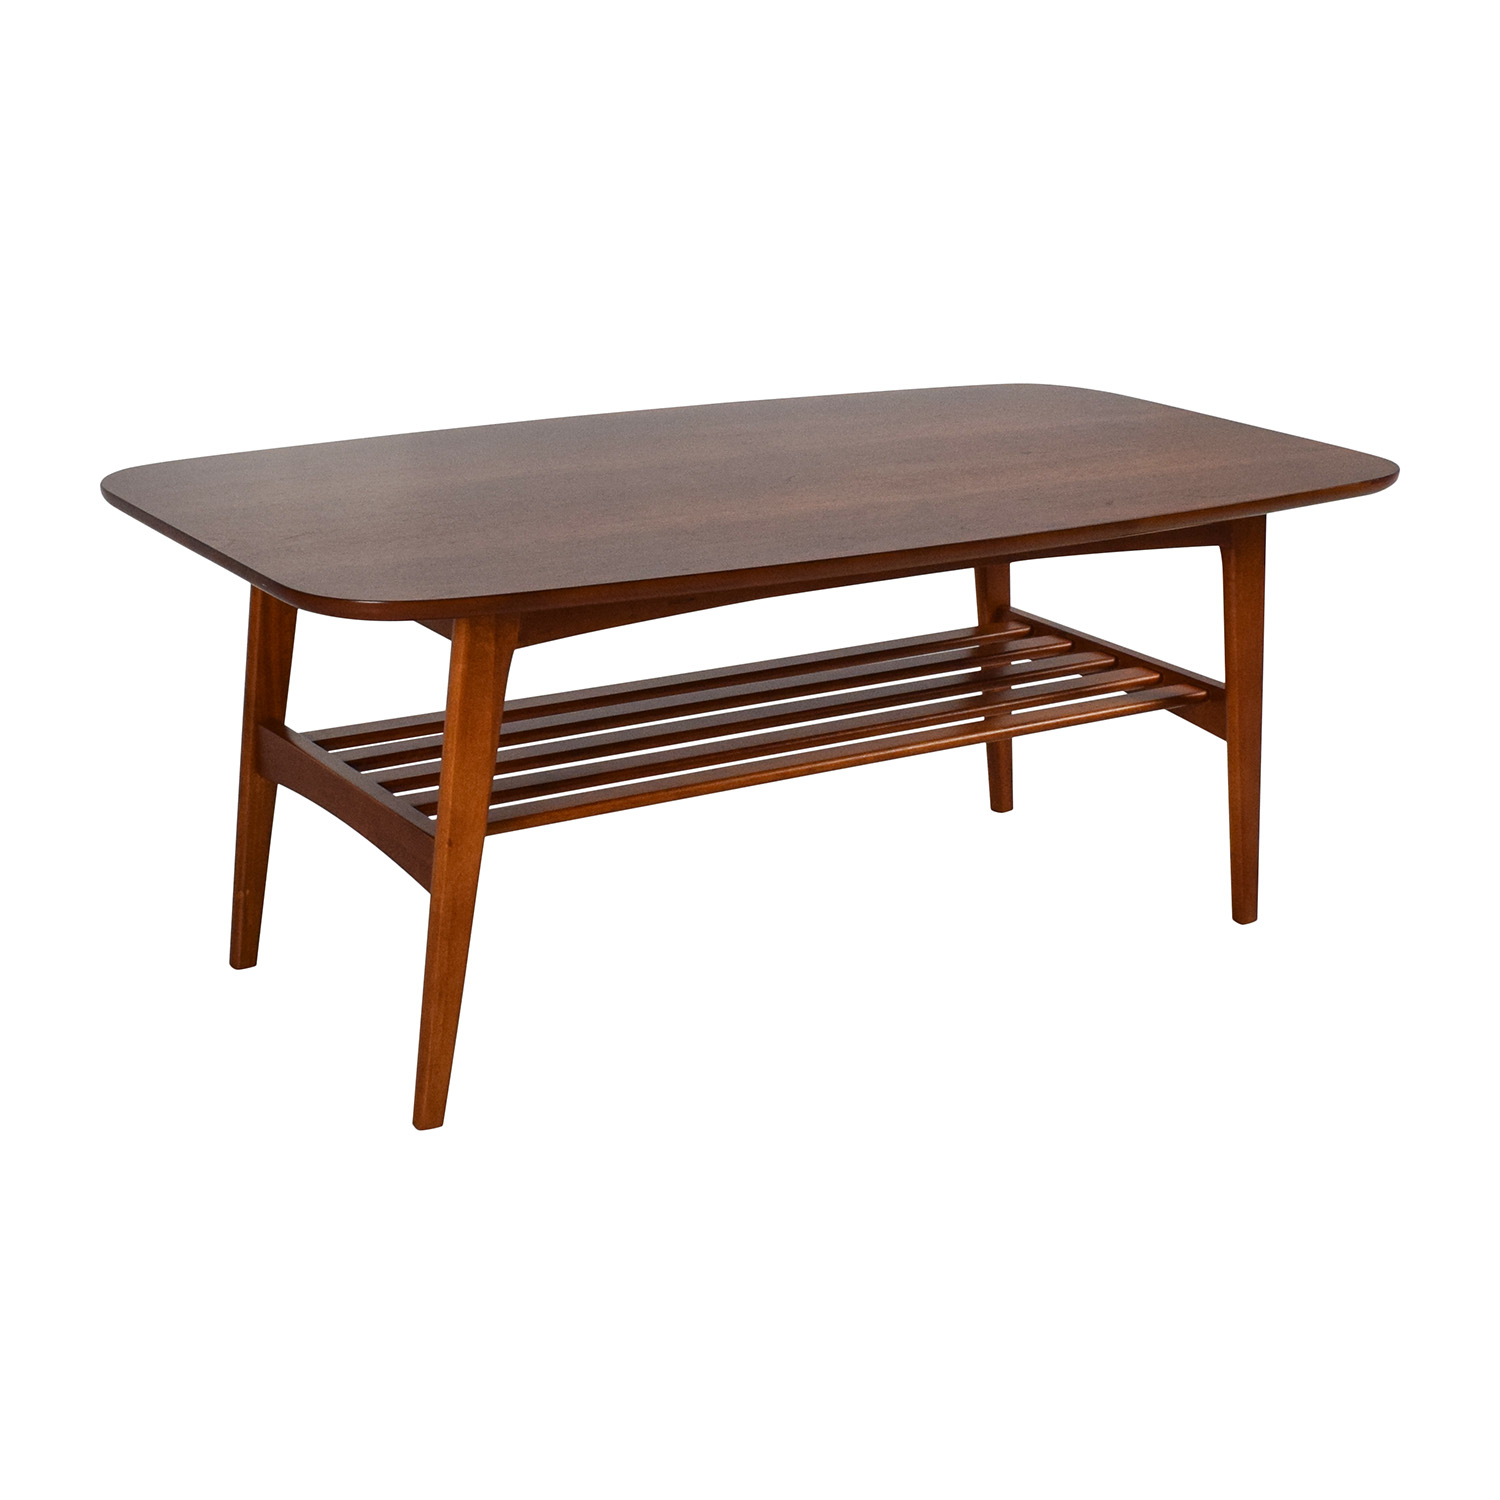 48 off brown wood coffee table with shelf tables Coffee table with shelf